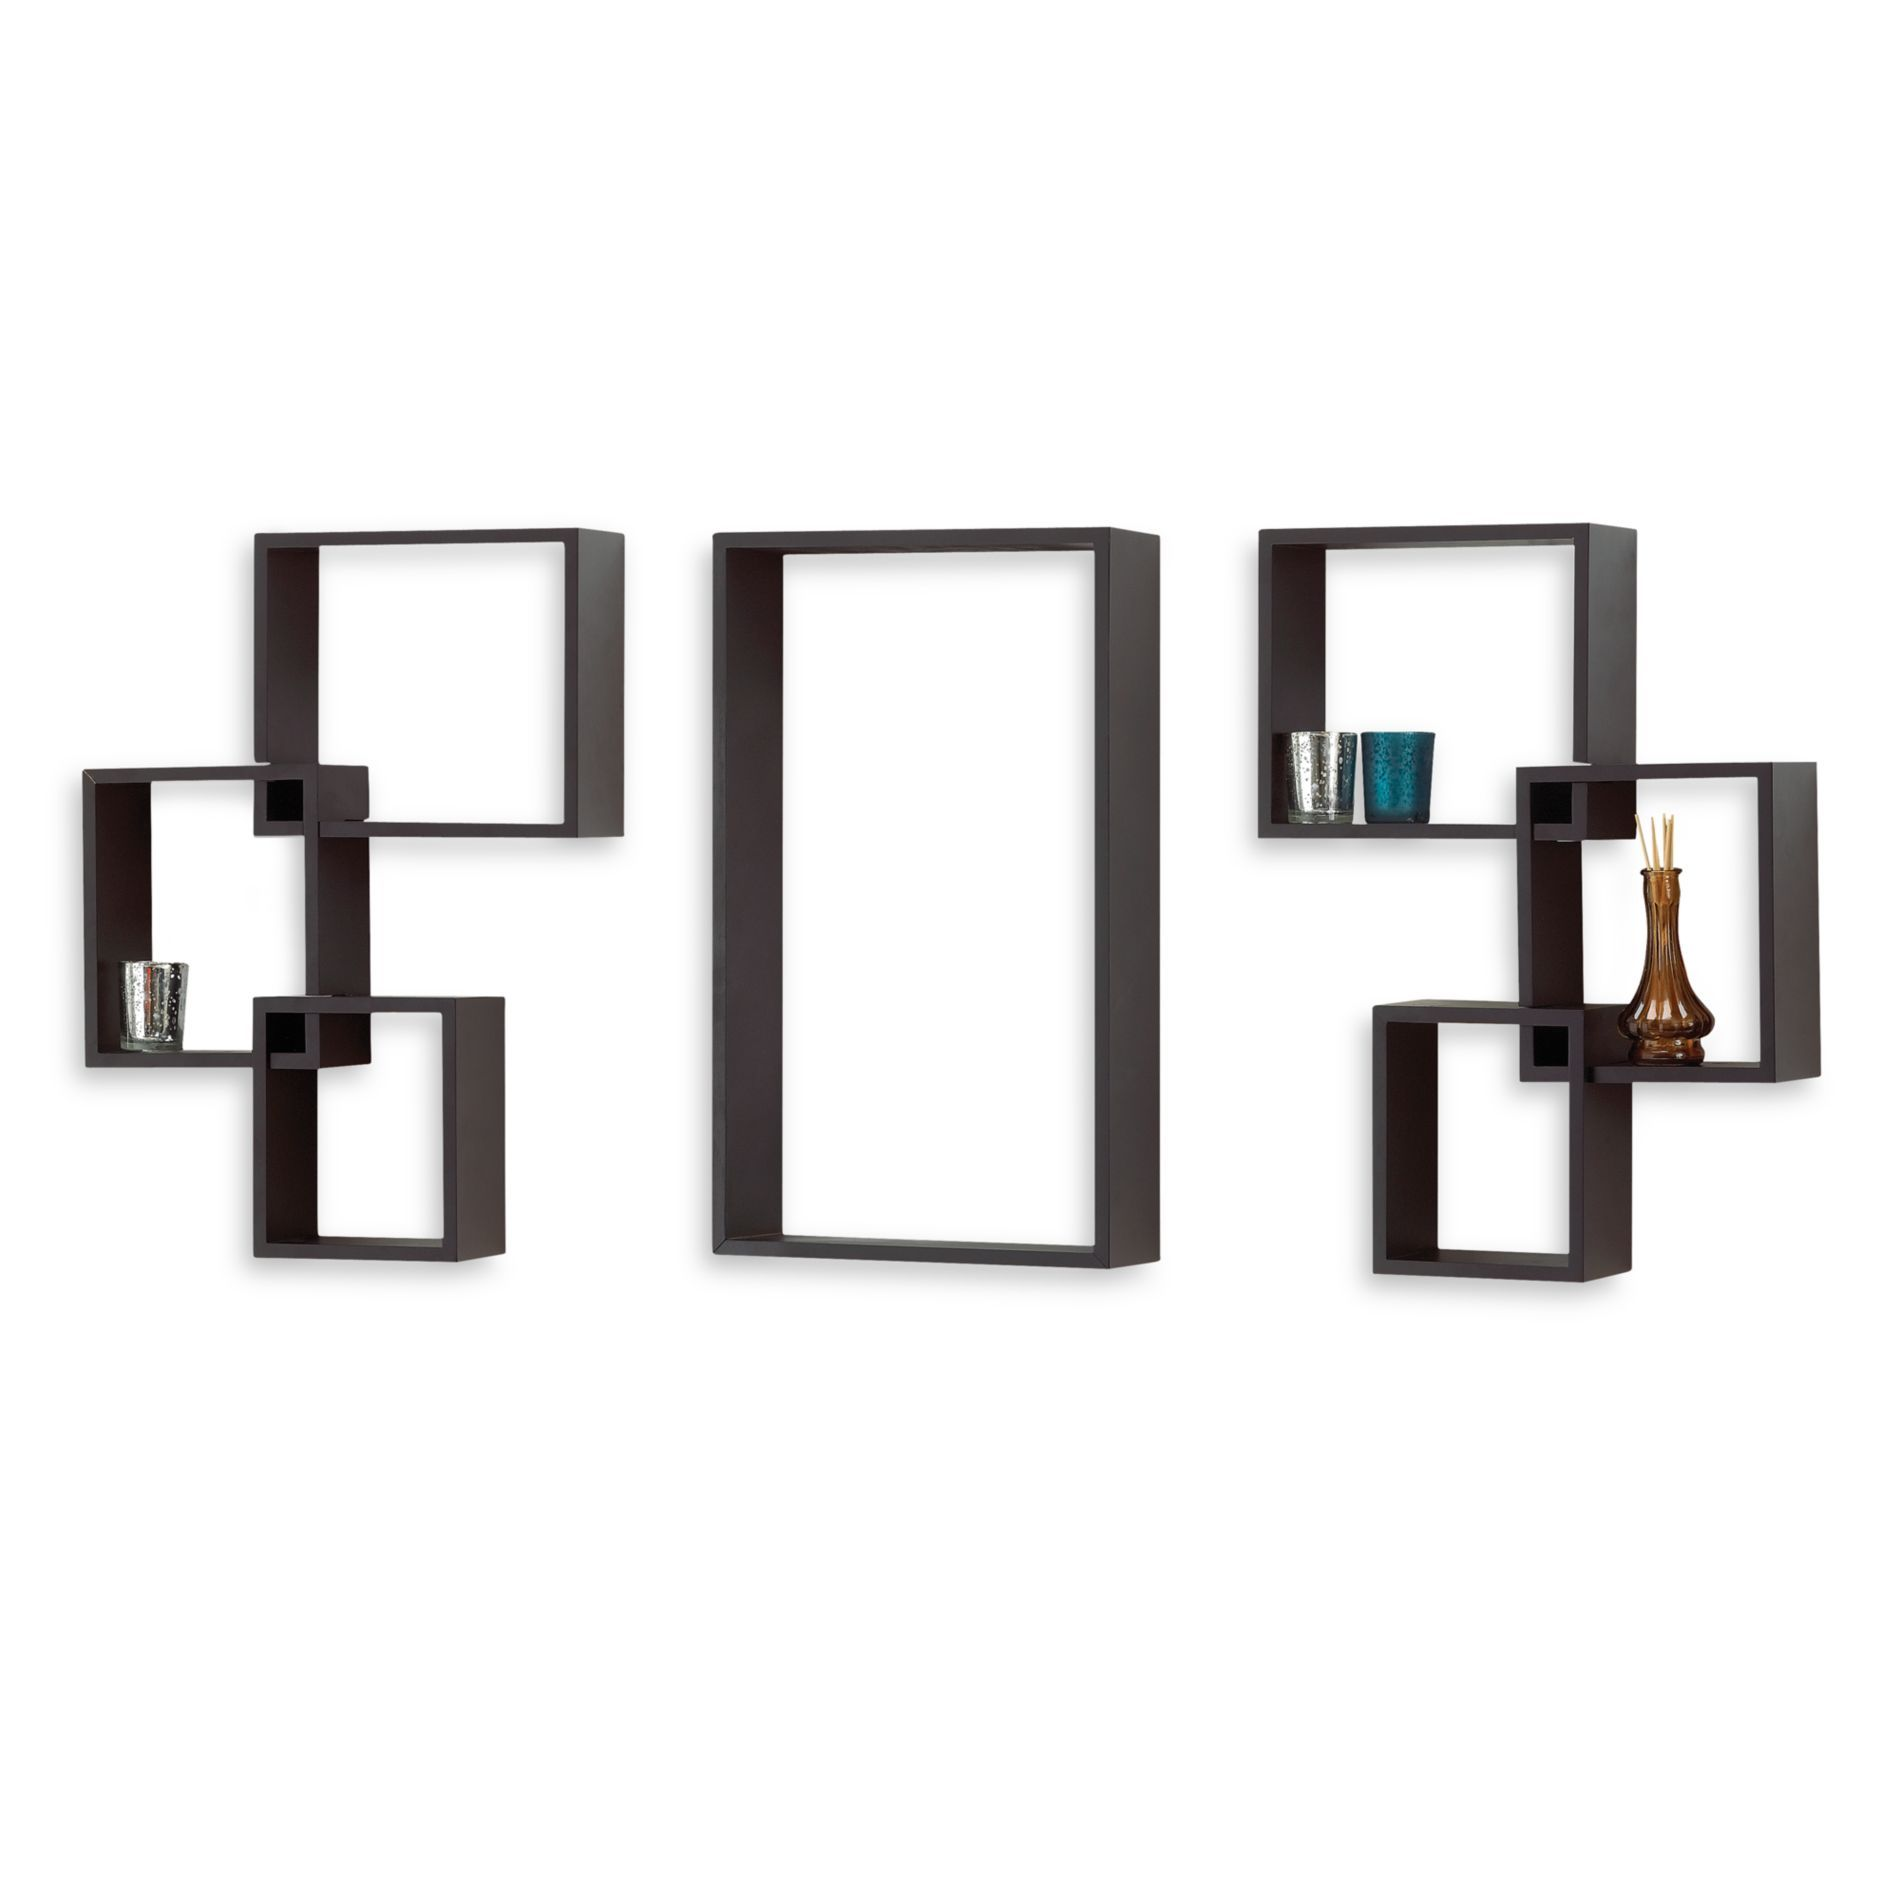 Abcs of decor 7 piece interlocking wall cube set abcs of decor 7 piece interlocking wall cube set bedbathandbeyond amipublicfo Image collections